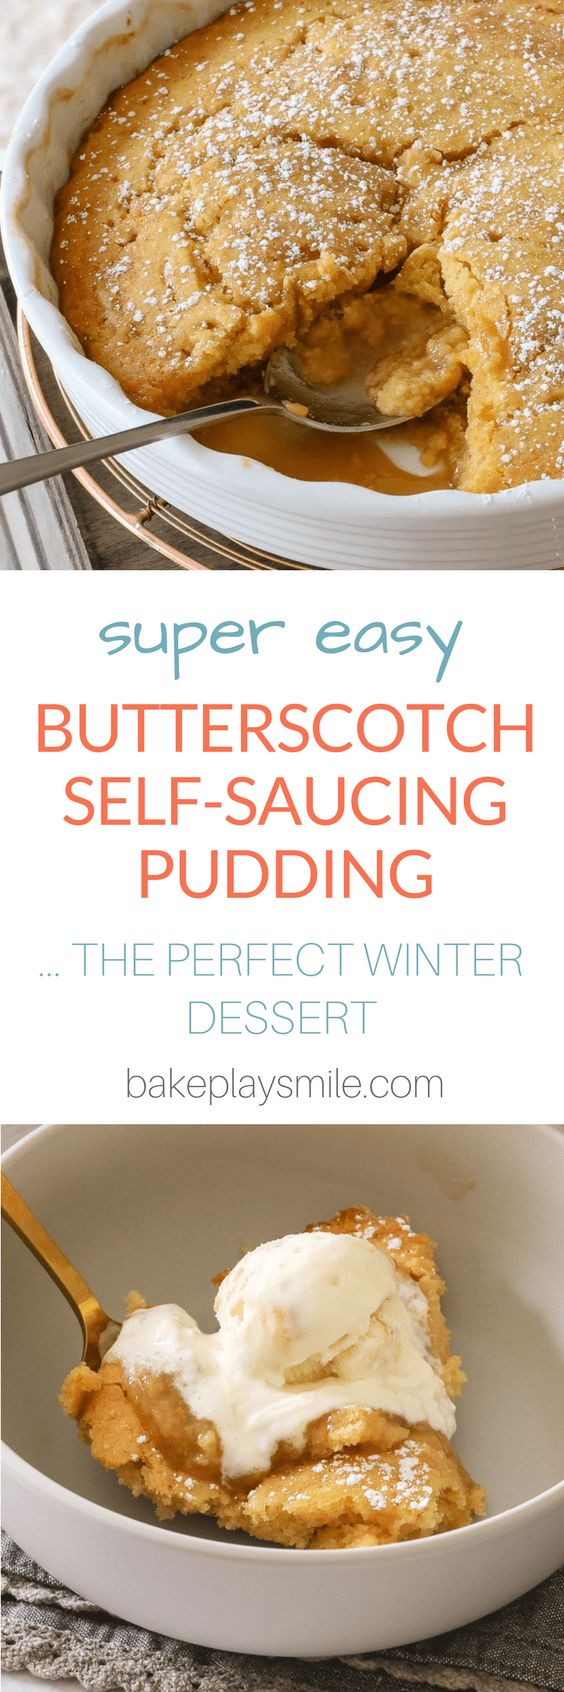 Butterscotch self saucing pudding